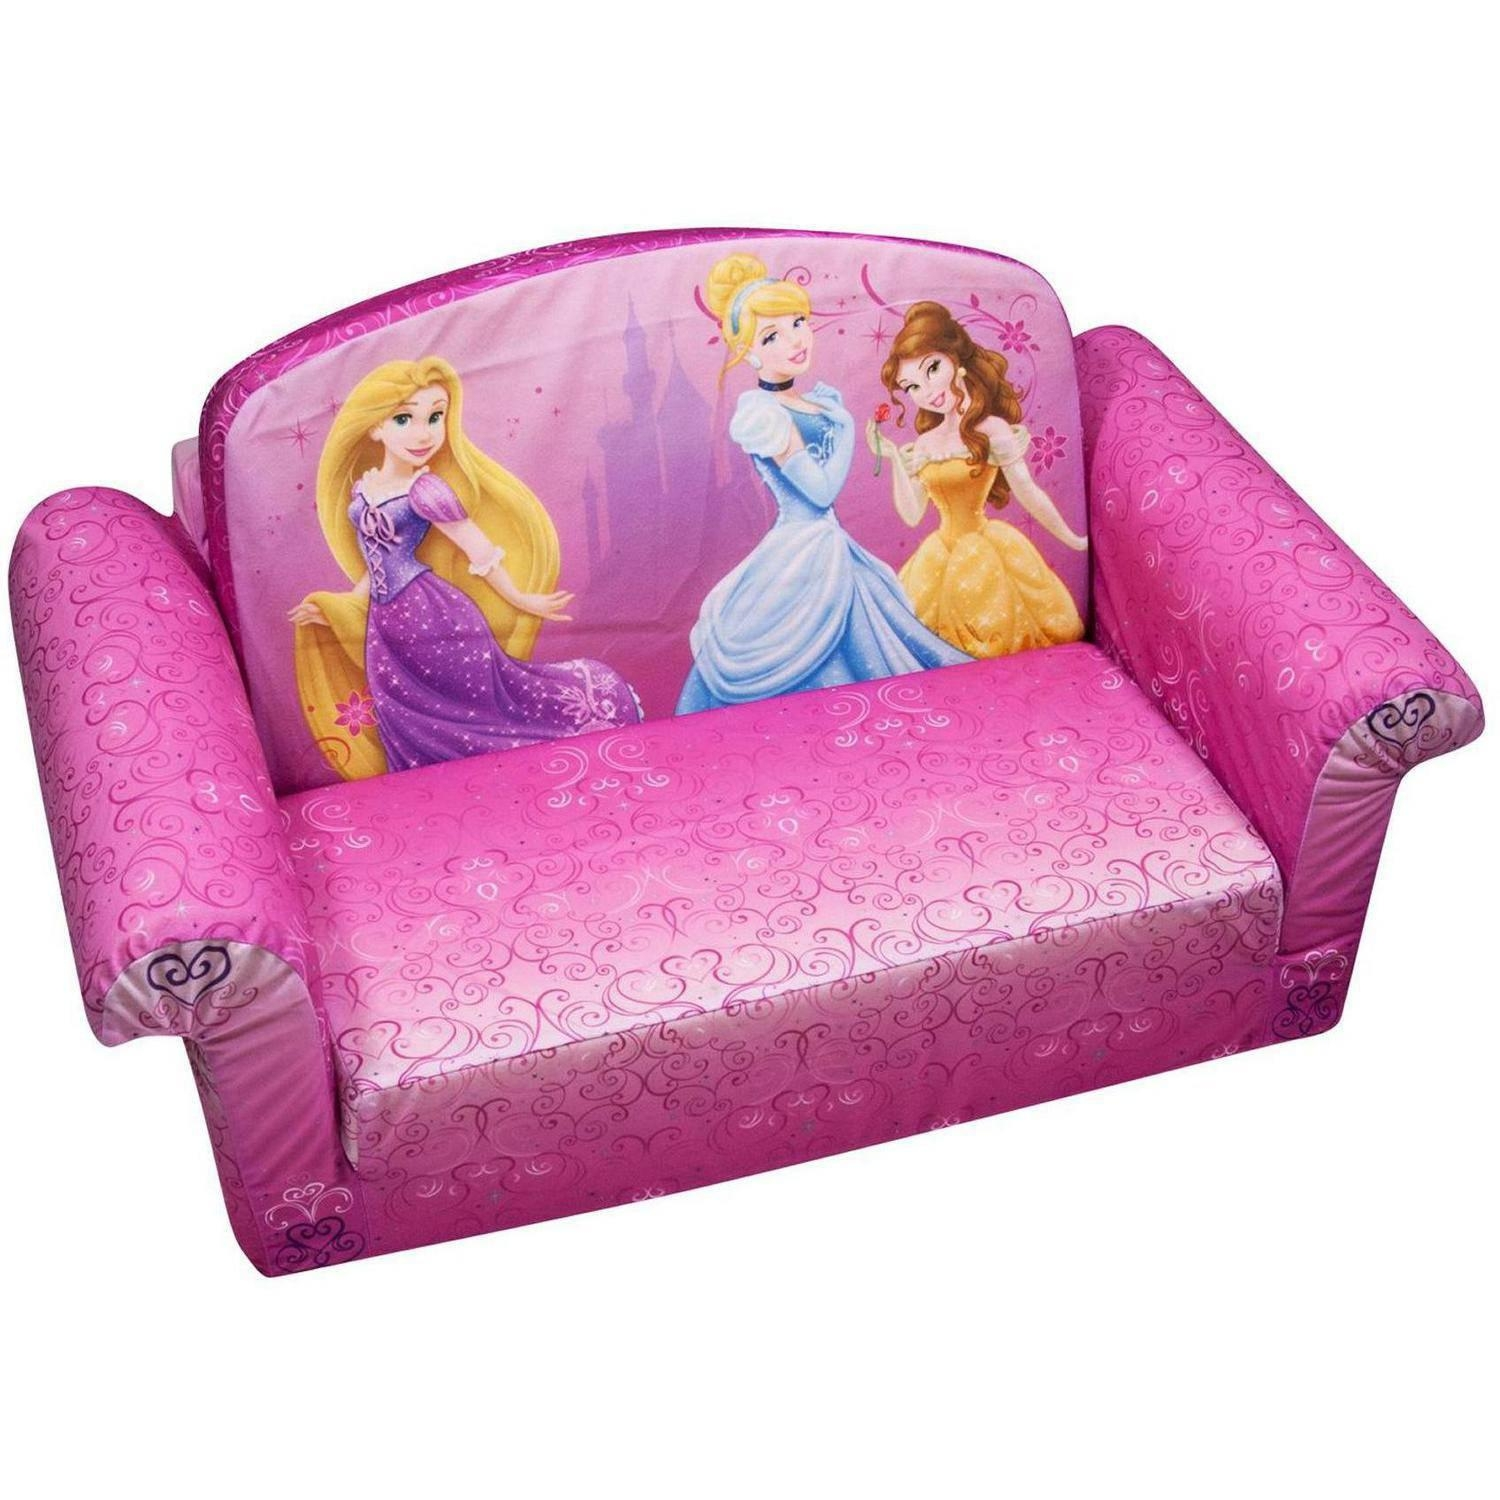 Featured Image of Disney Sofas